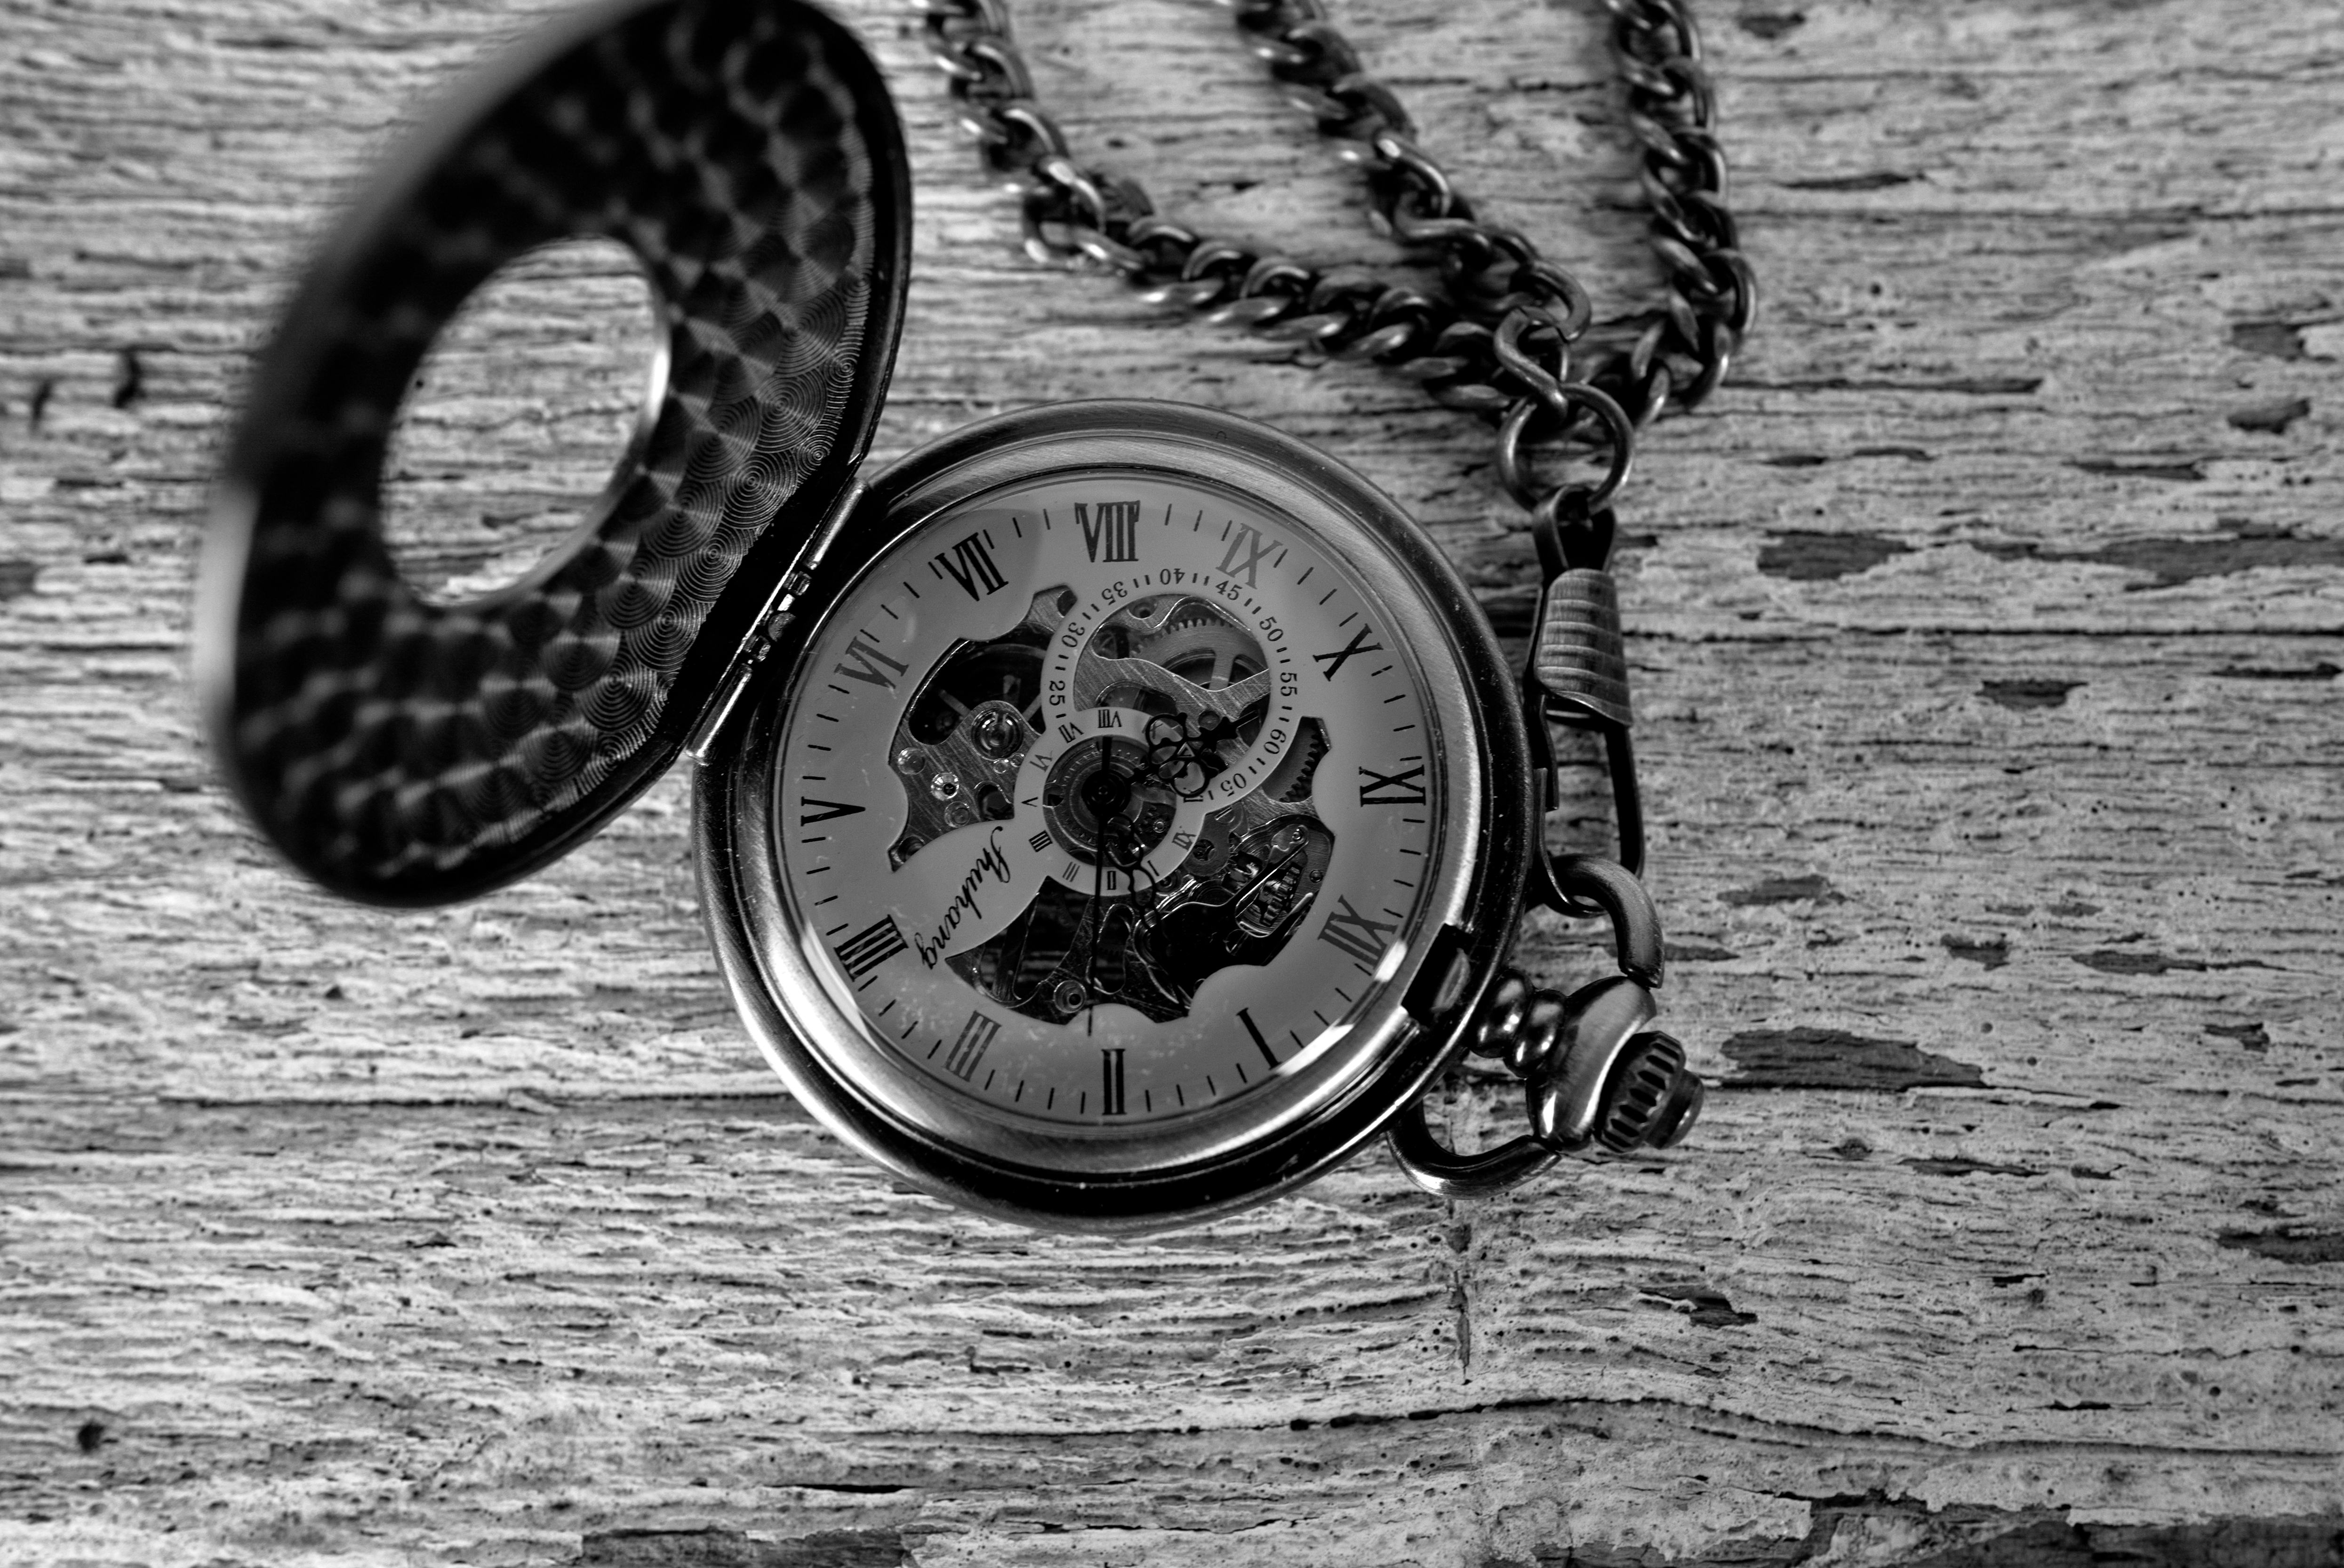 A photo of a pocketwatch taken by the Leica Q (Type 116).